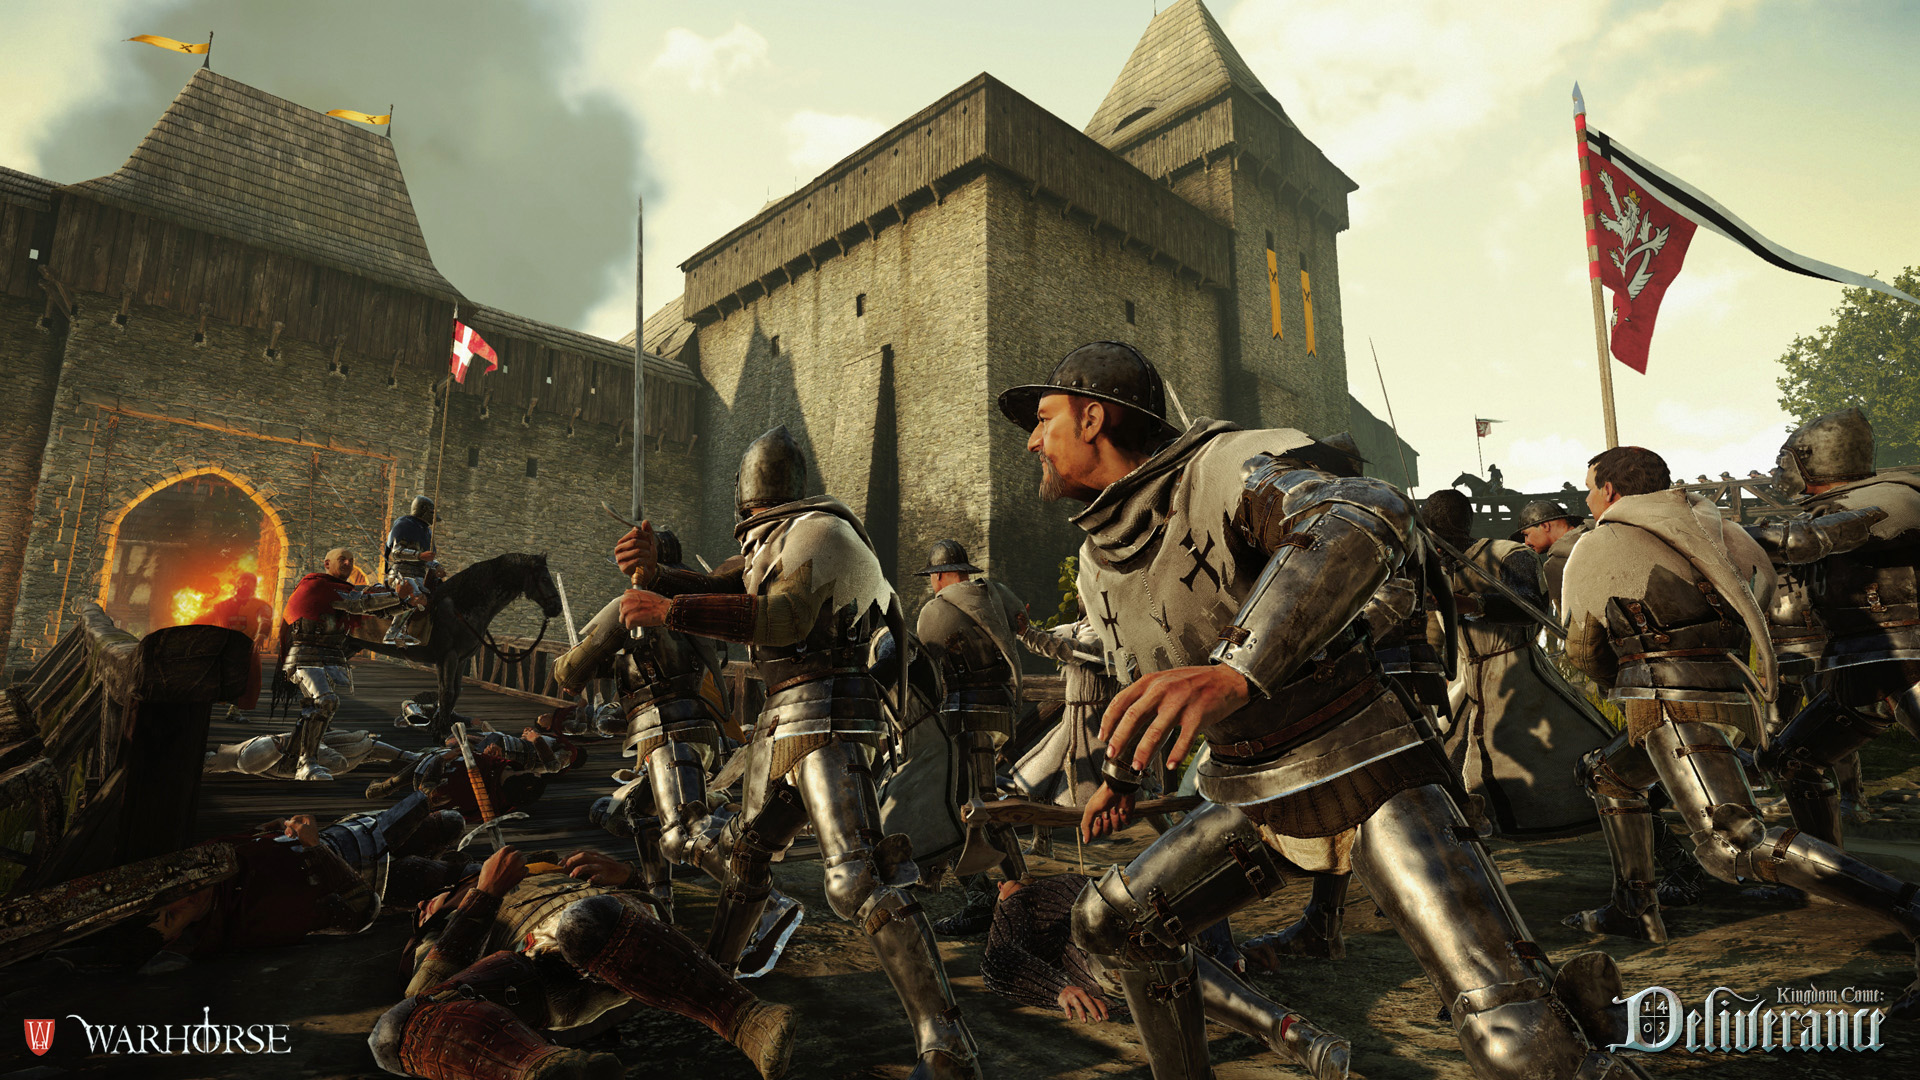 kingdom come deliverance pc update 1.4 and free hd texture & audio